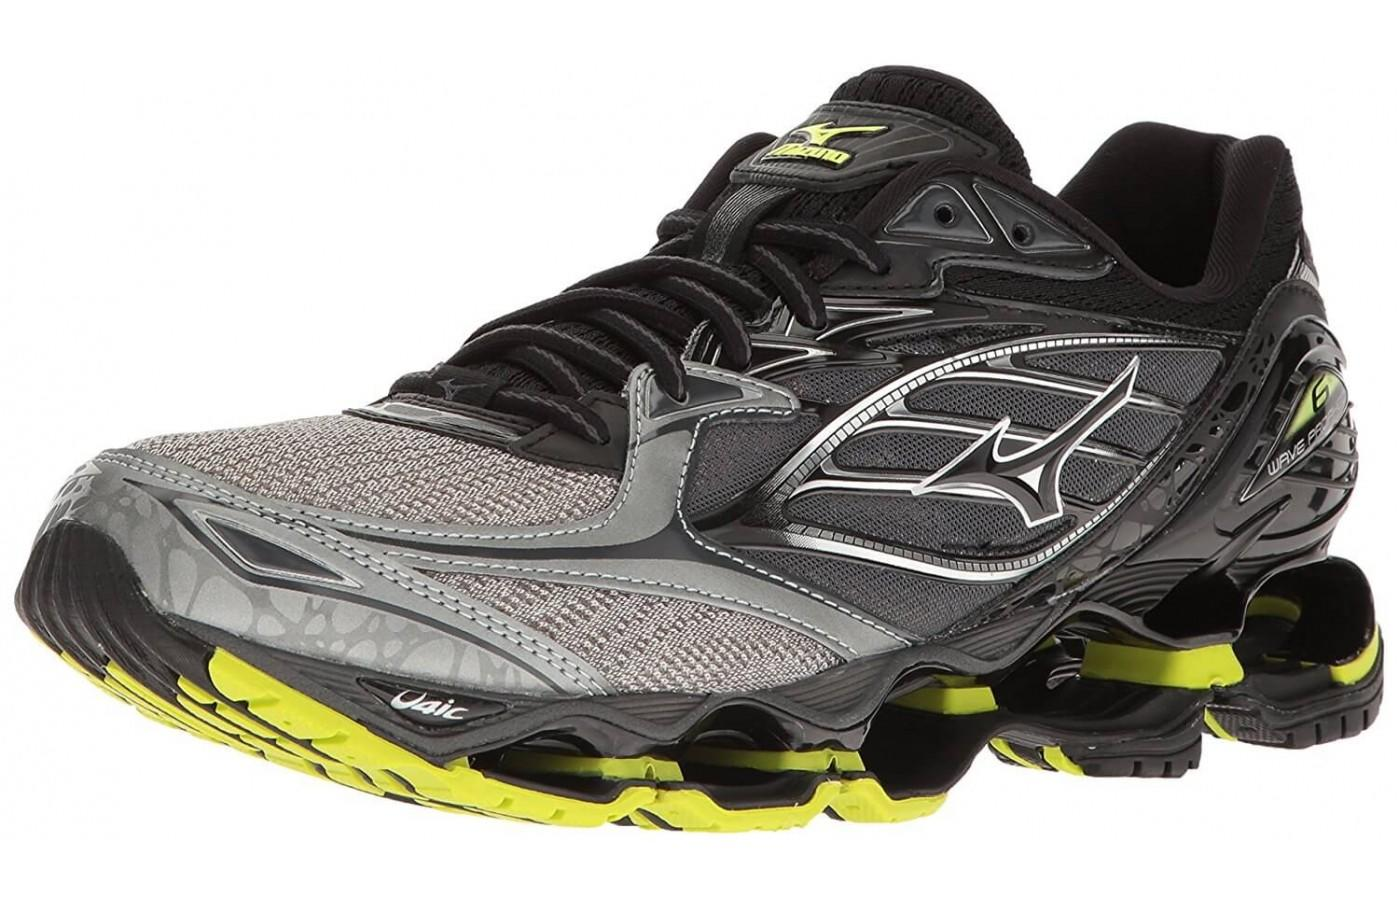 3b6906c98519 Runners love the unique style and design of the Mizuno Wave Prophecy 6 Nova  ...